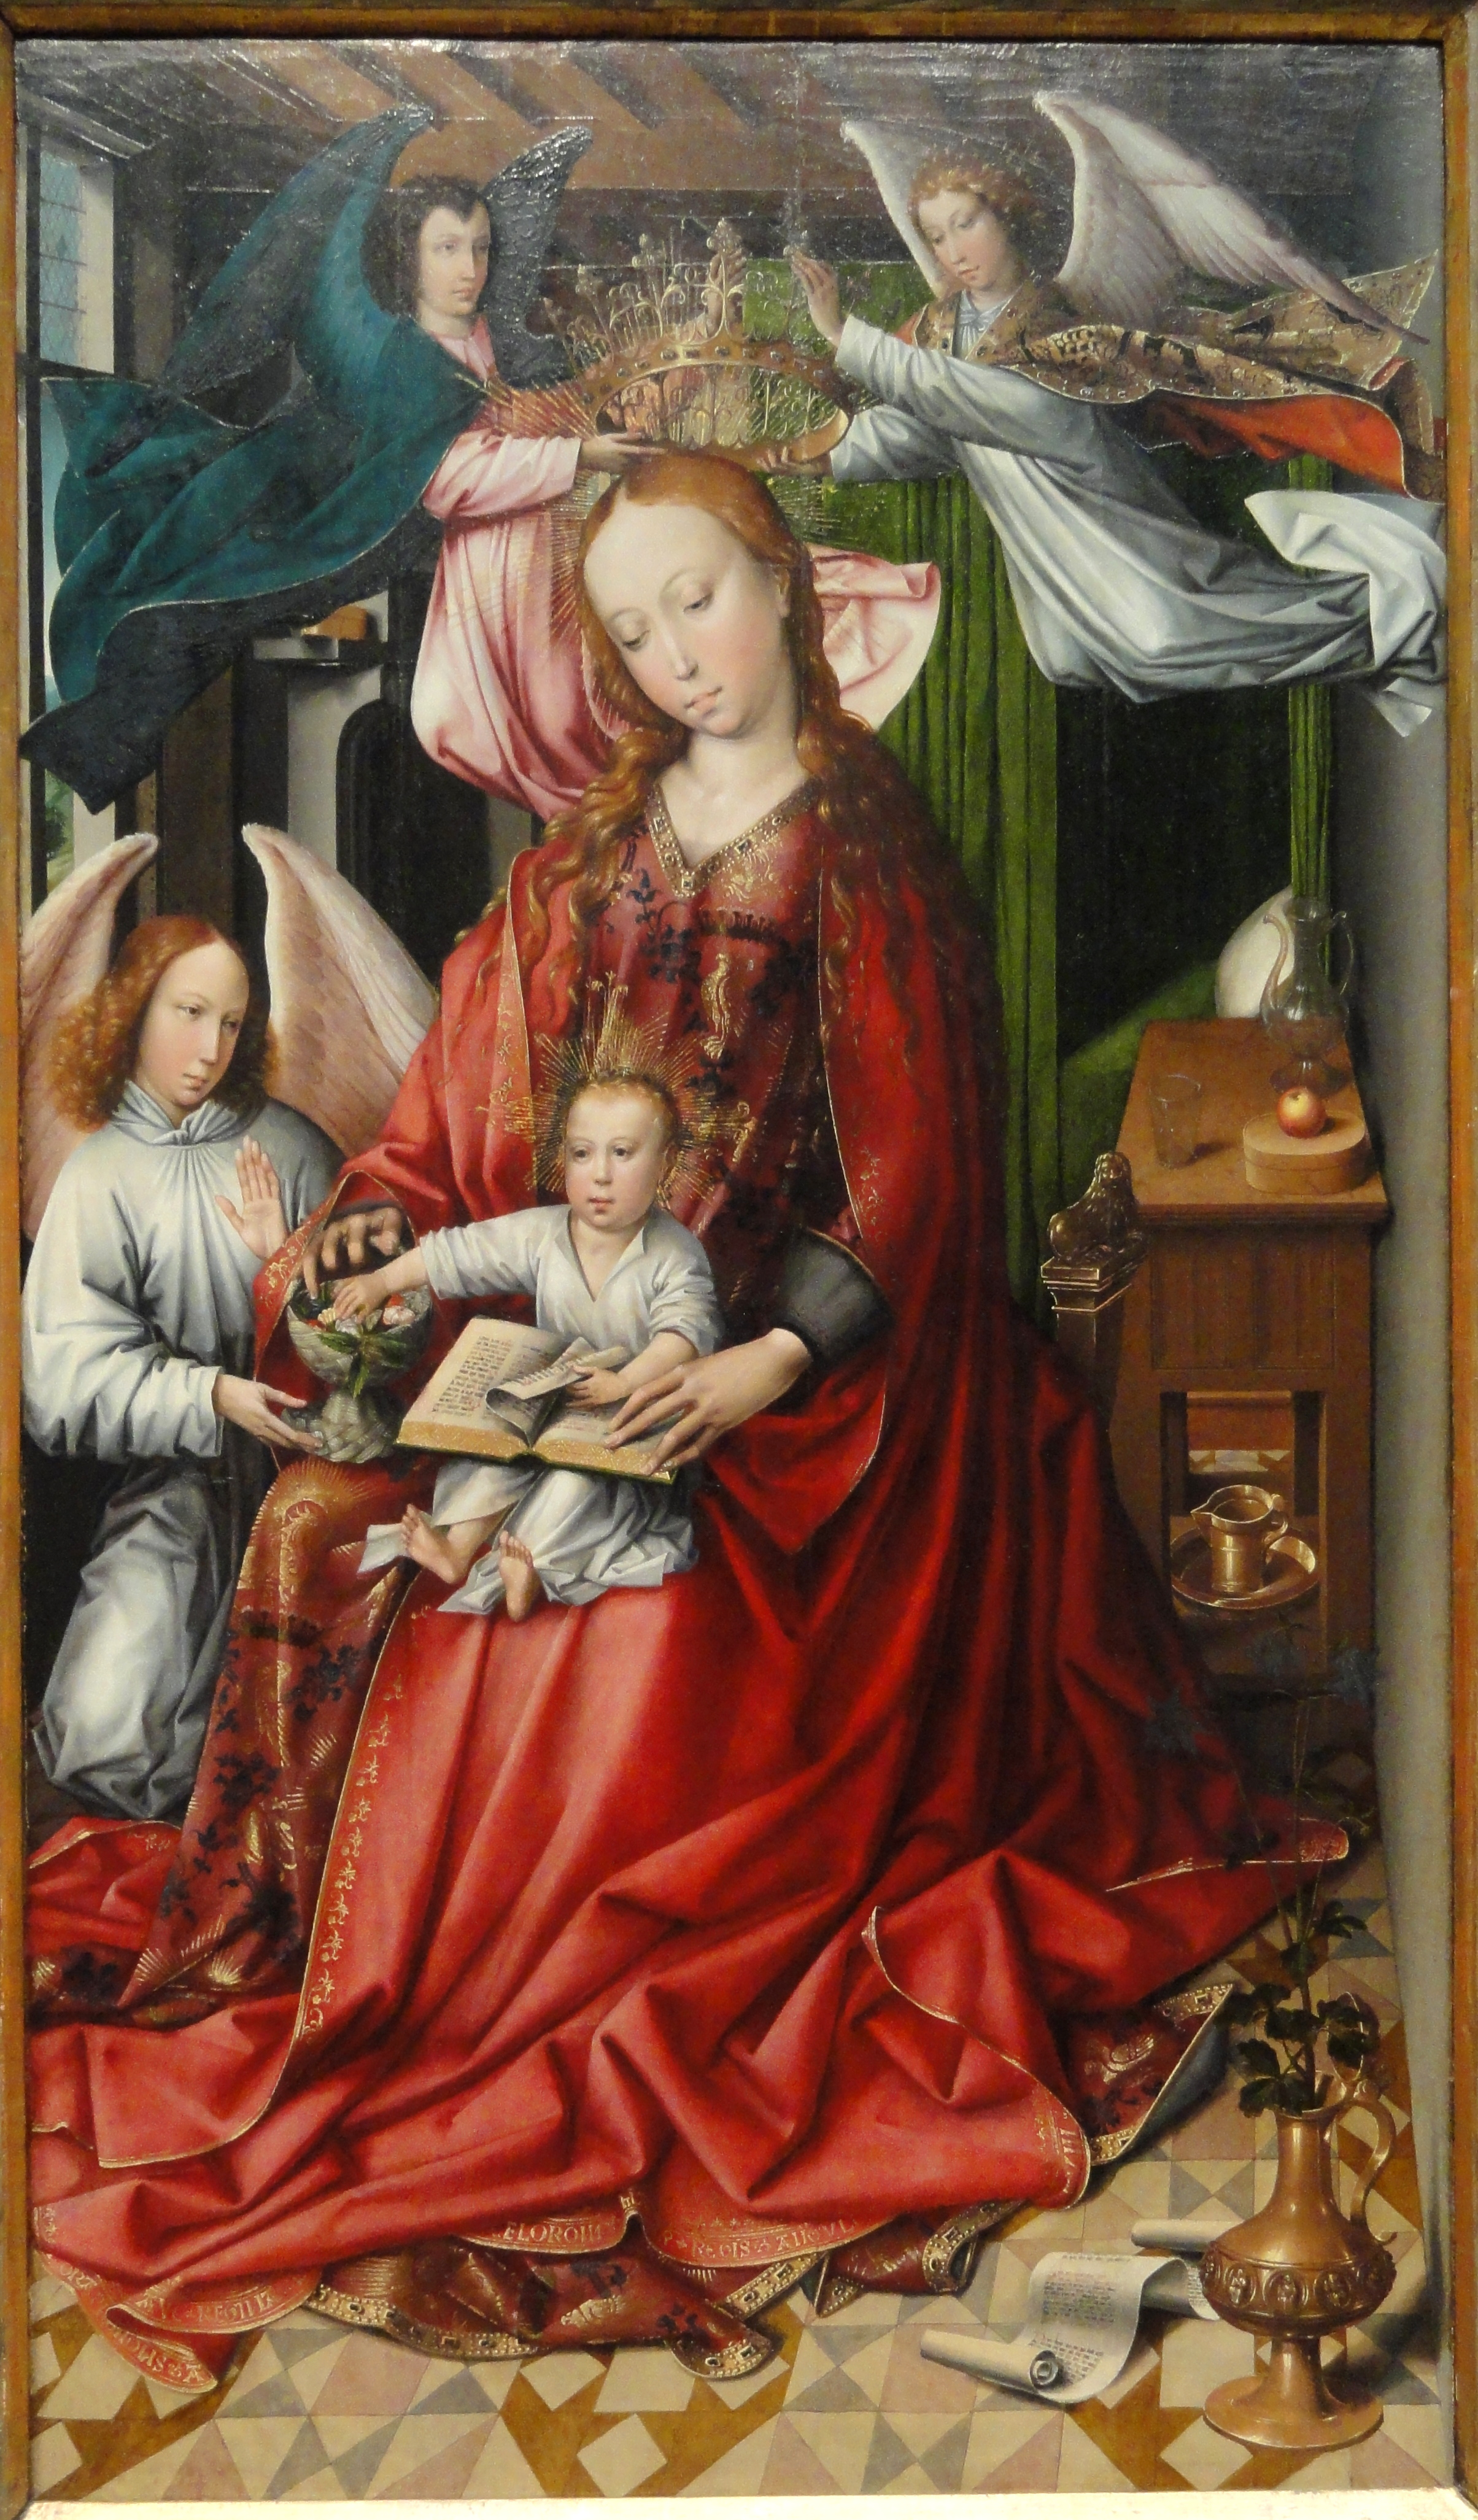 virgin child The virgin and child with chancellor rolin marks an important stage in van eyck's artistic development, and flemish painting as a whole van eyck's works often feature prominent portraits of his patrons, as here and in the virgin with canon van der paele painted between 1434 and 1436.